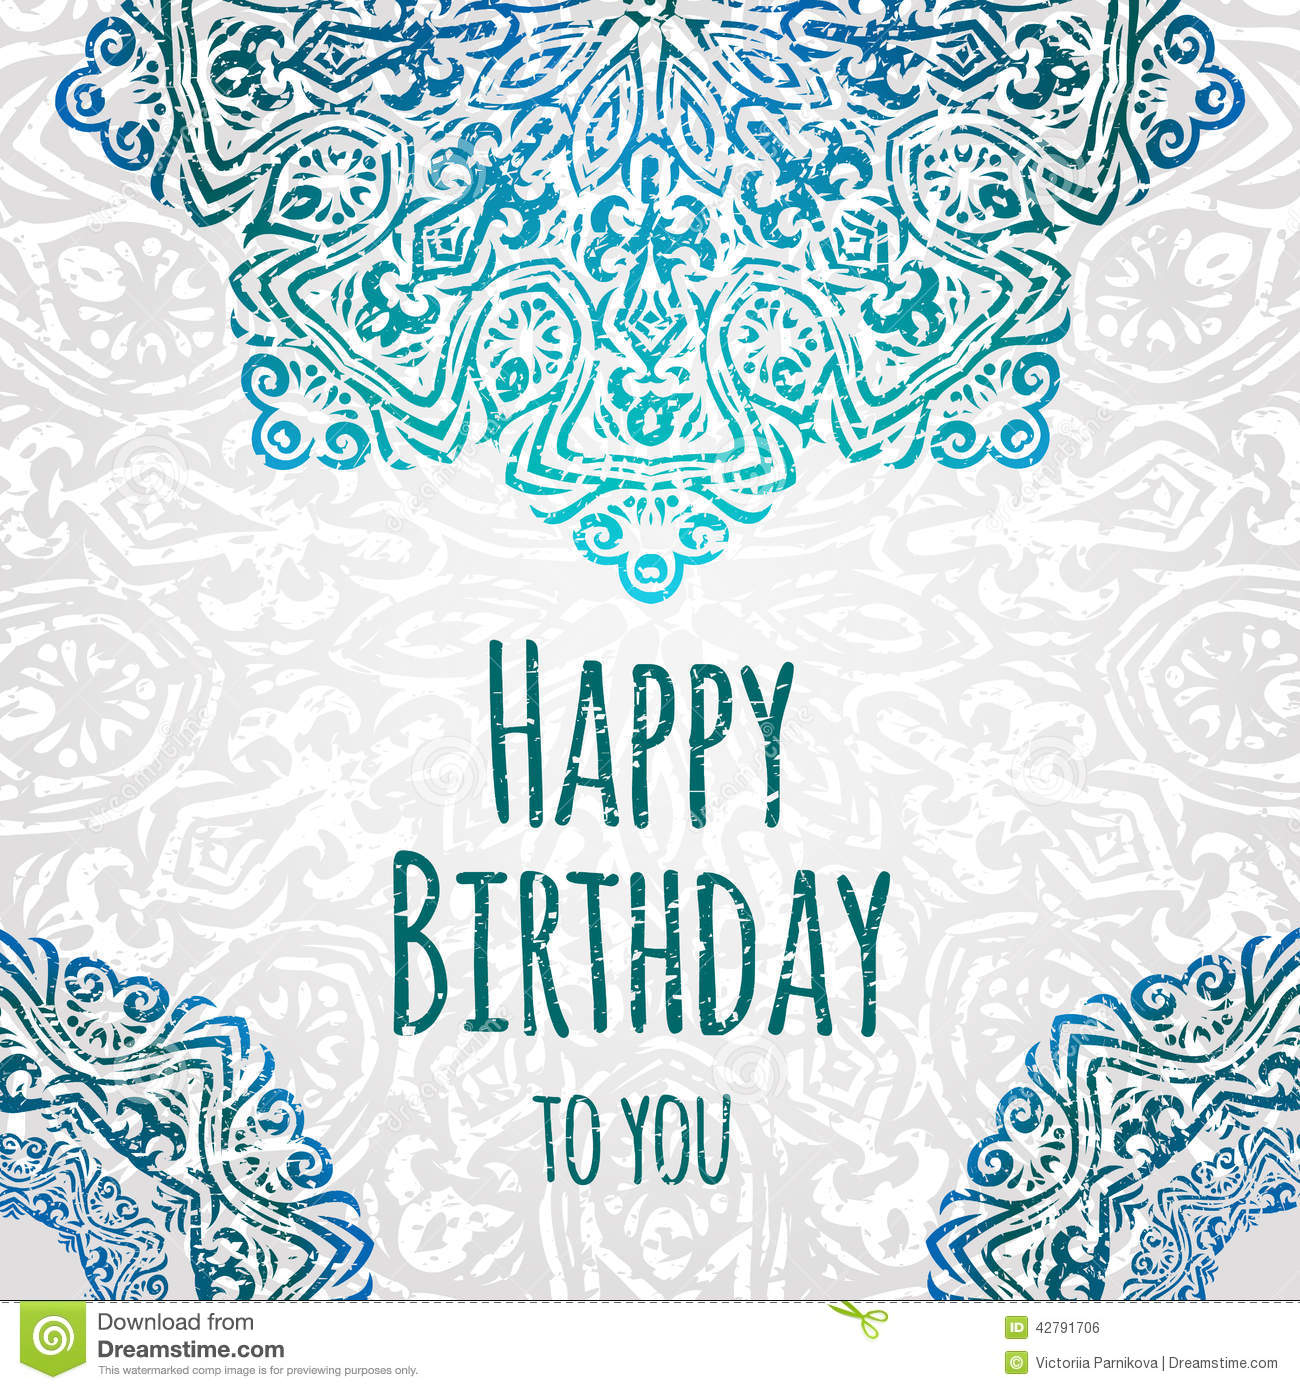 Lacy Ethnic Vector Happy Birthday Card Template Romantic Vintage – Happy Birthday Card Templates Free